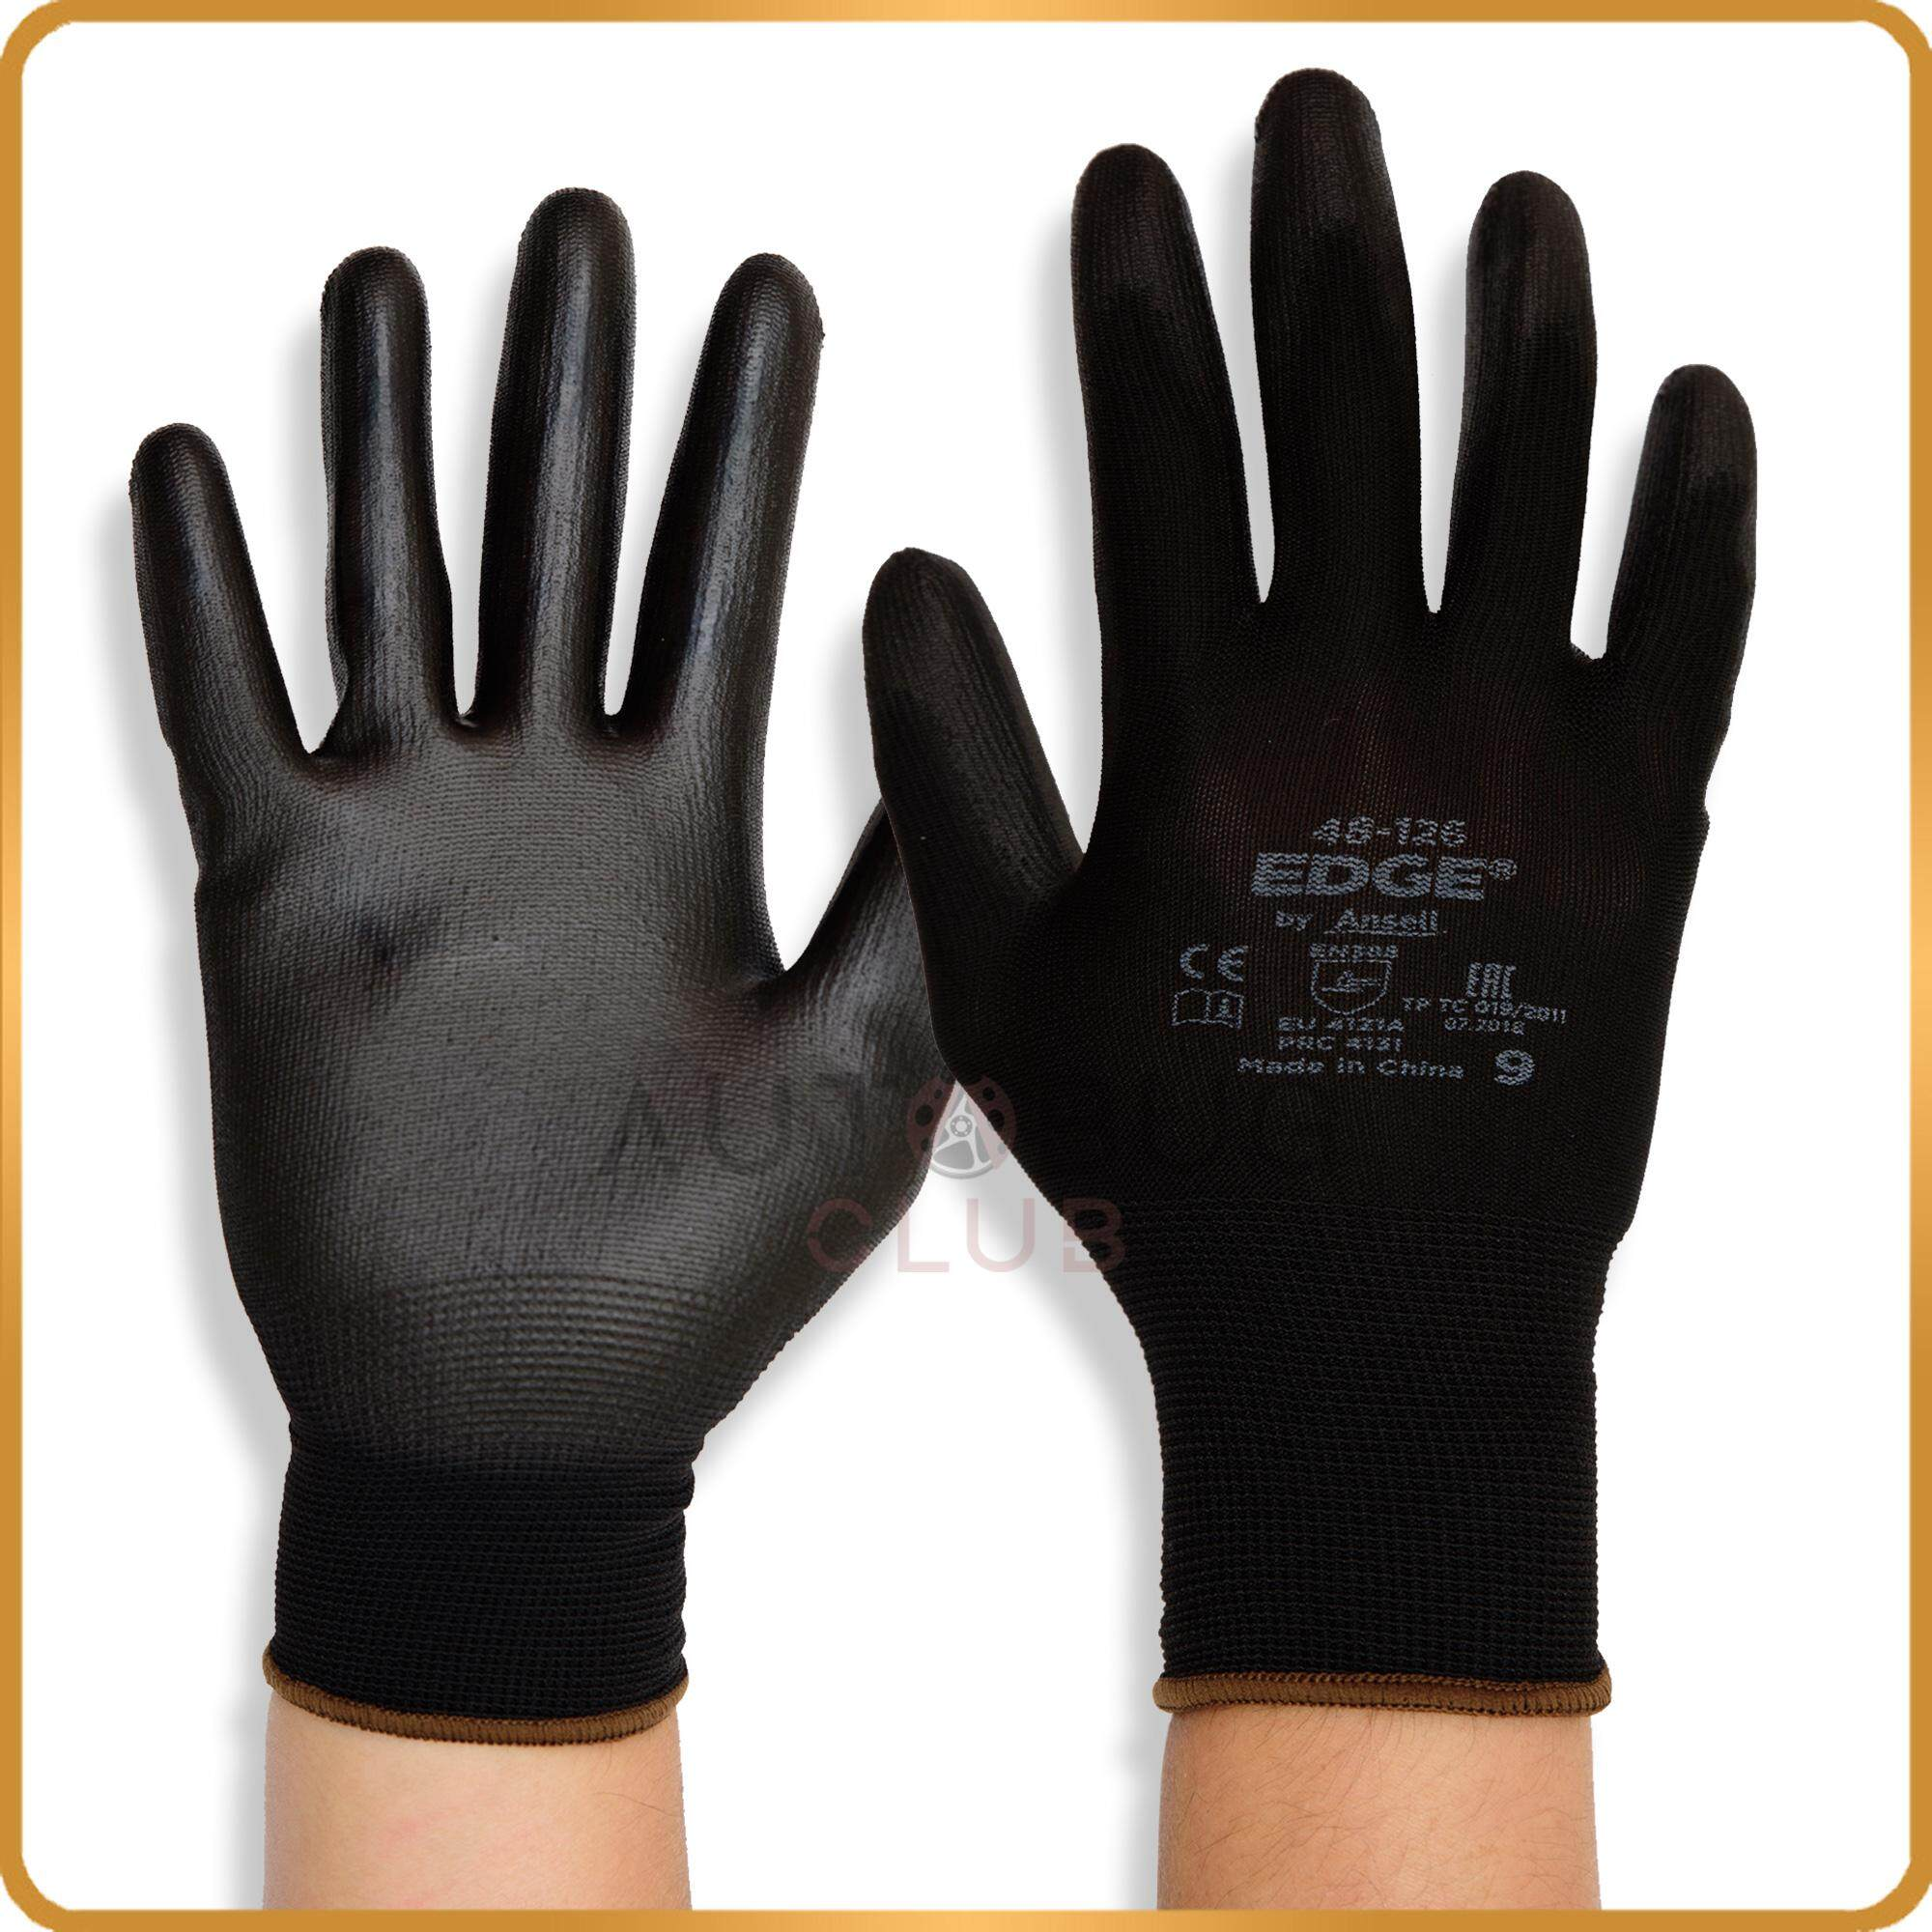 Ansell Edge® 48-126 Tear Resistance & Anti Slip Protective Gloves